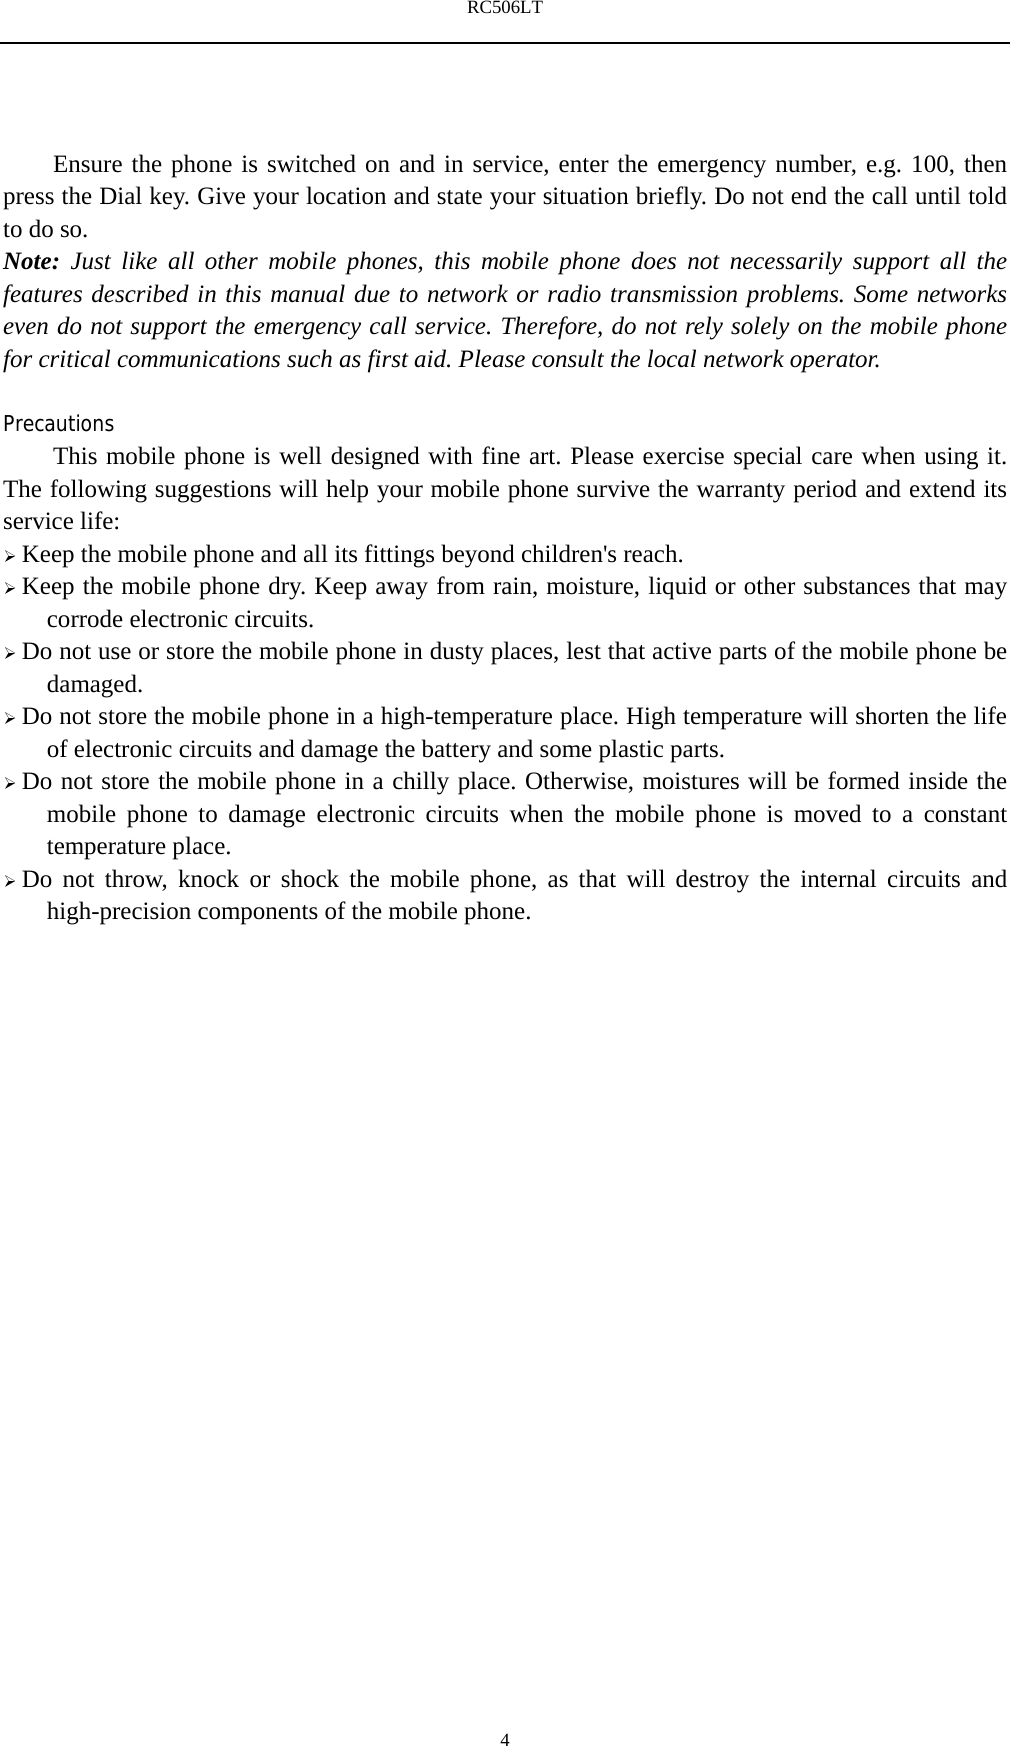 Reliance Communications RC506LT 4G Mobile Phone User Manual